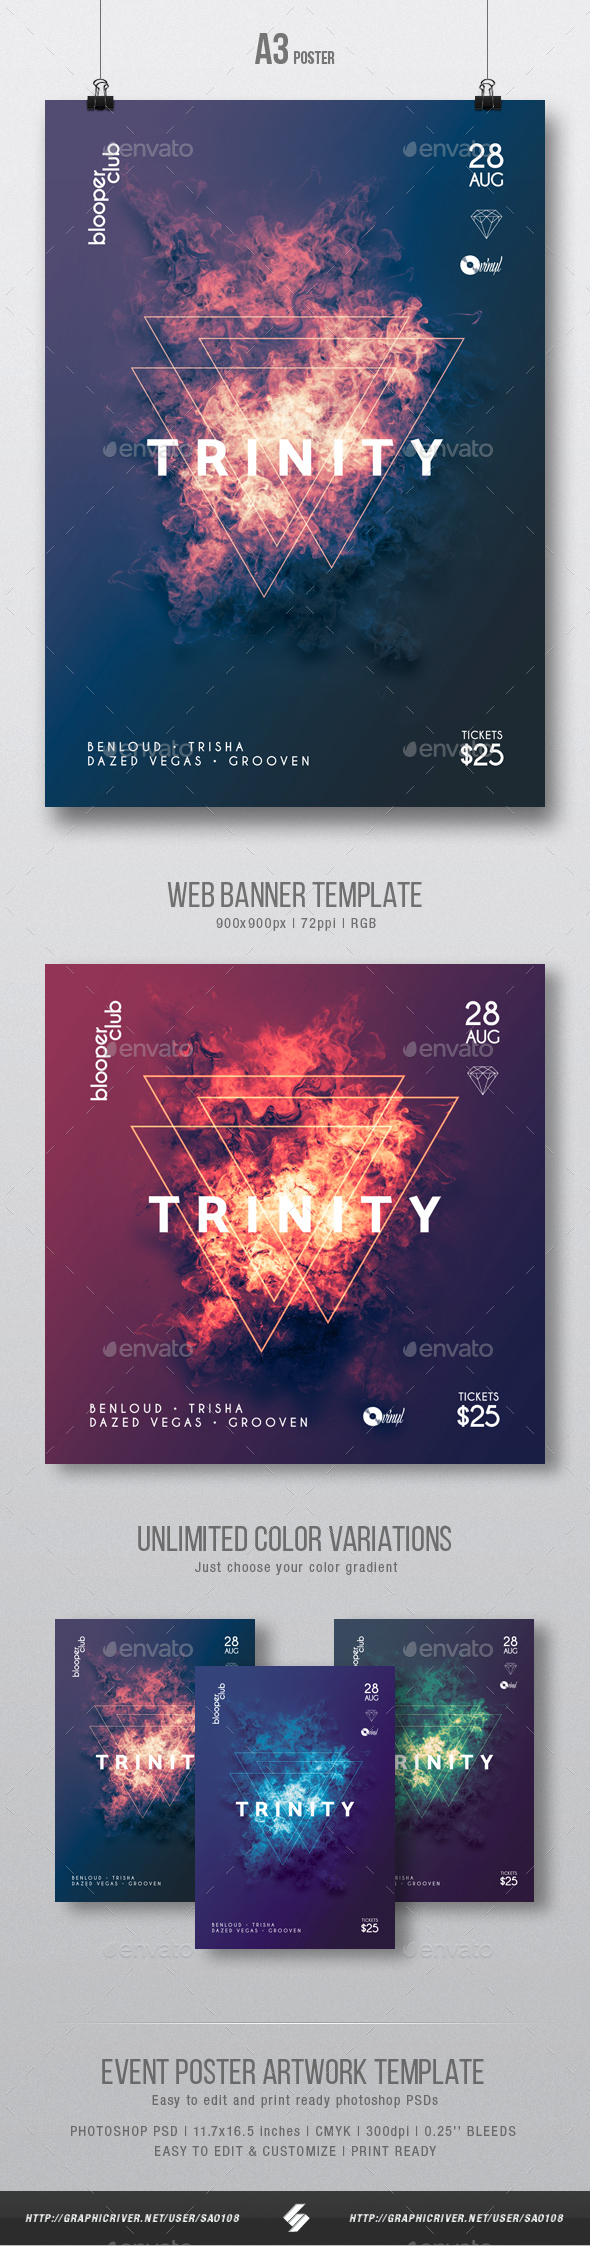 GraphicRiver Trinity Progressive Party Flyer Poster Artwork Template A3 20635929